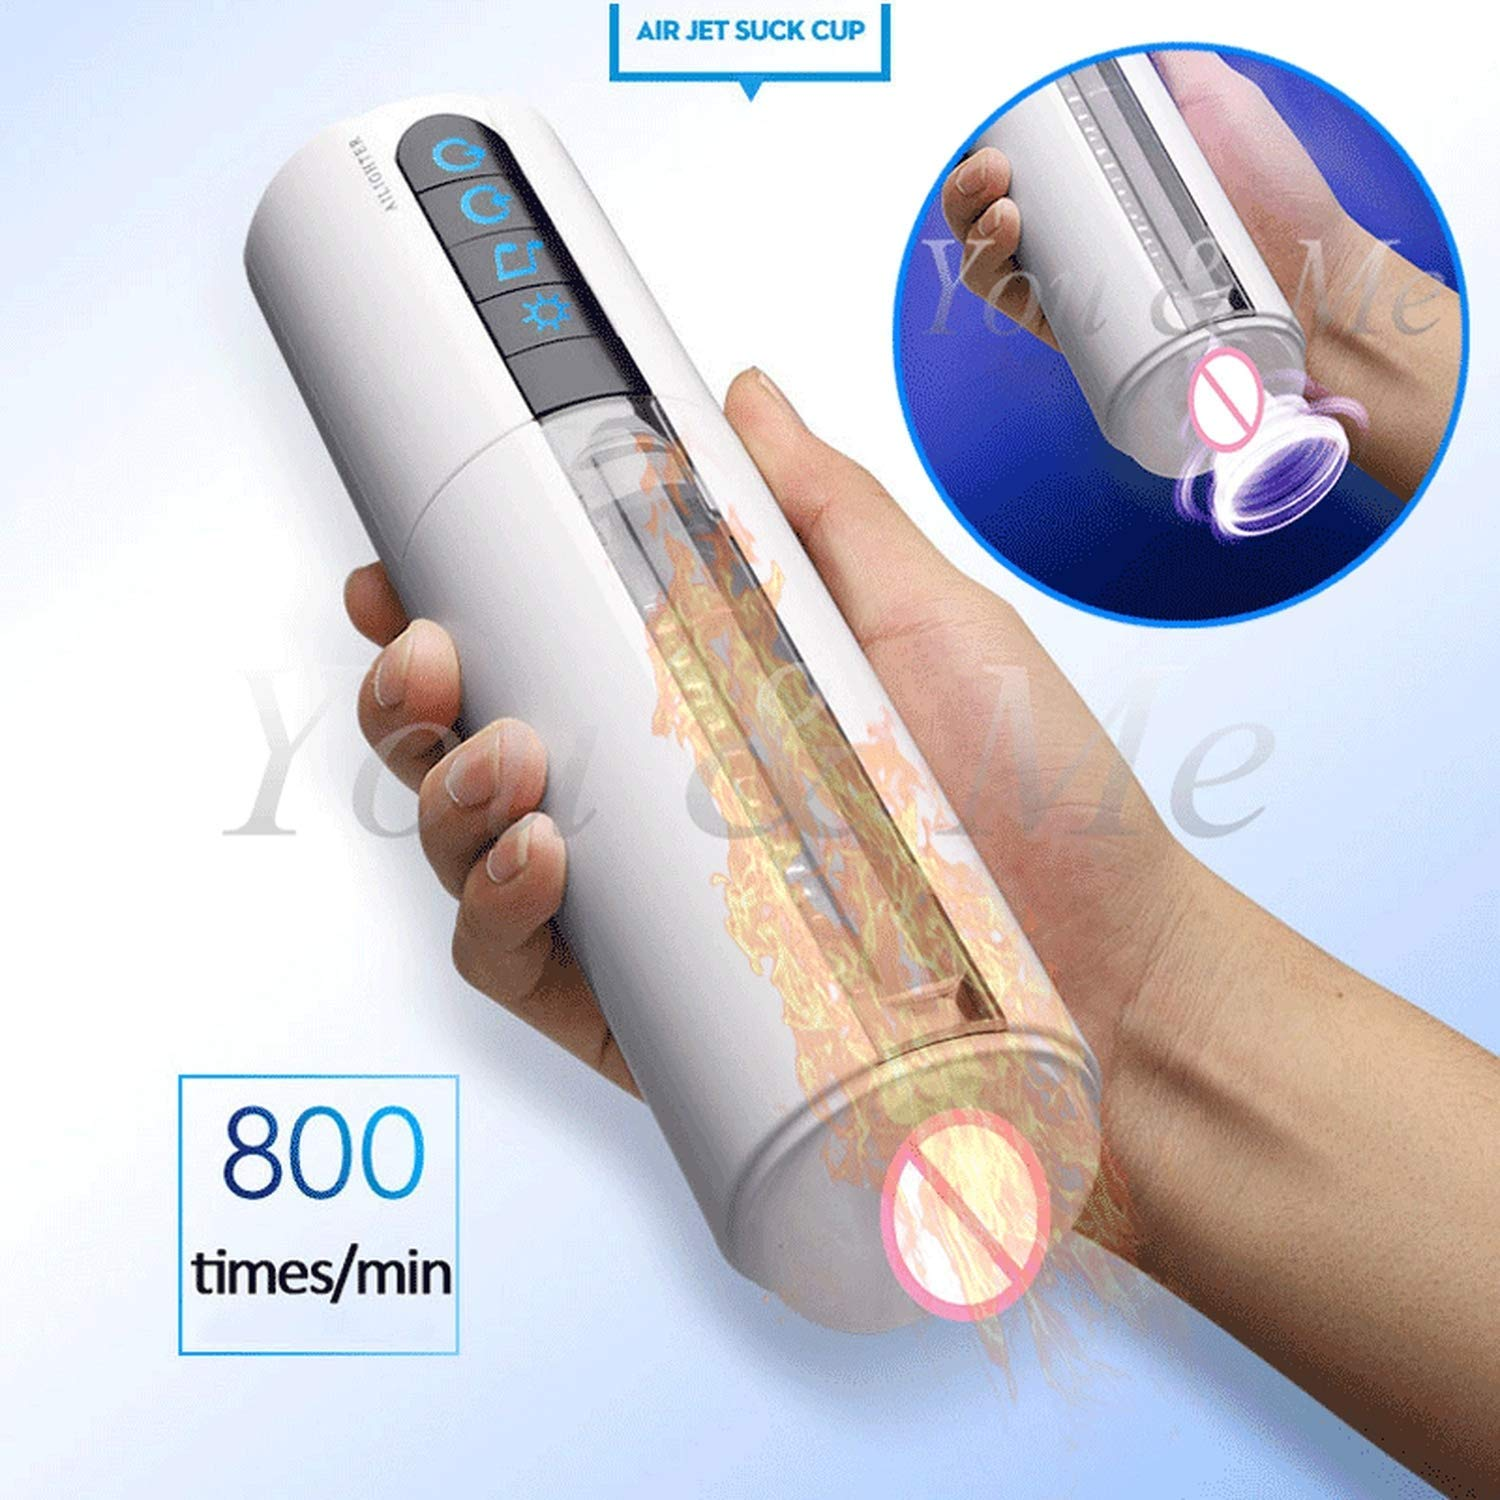 Maxcoo Tshirt New Intelligent Voice Heating Blowjob Sucking Sex Machine Male Masturbators Cup Artificial Vagina Real Pussy for Men,with Retail Box Mysterious